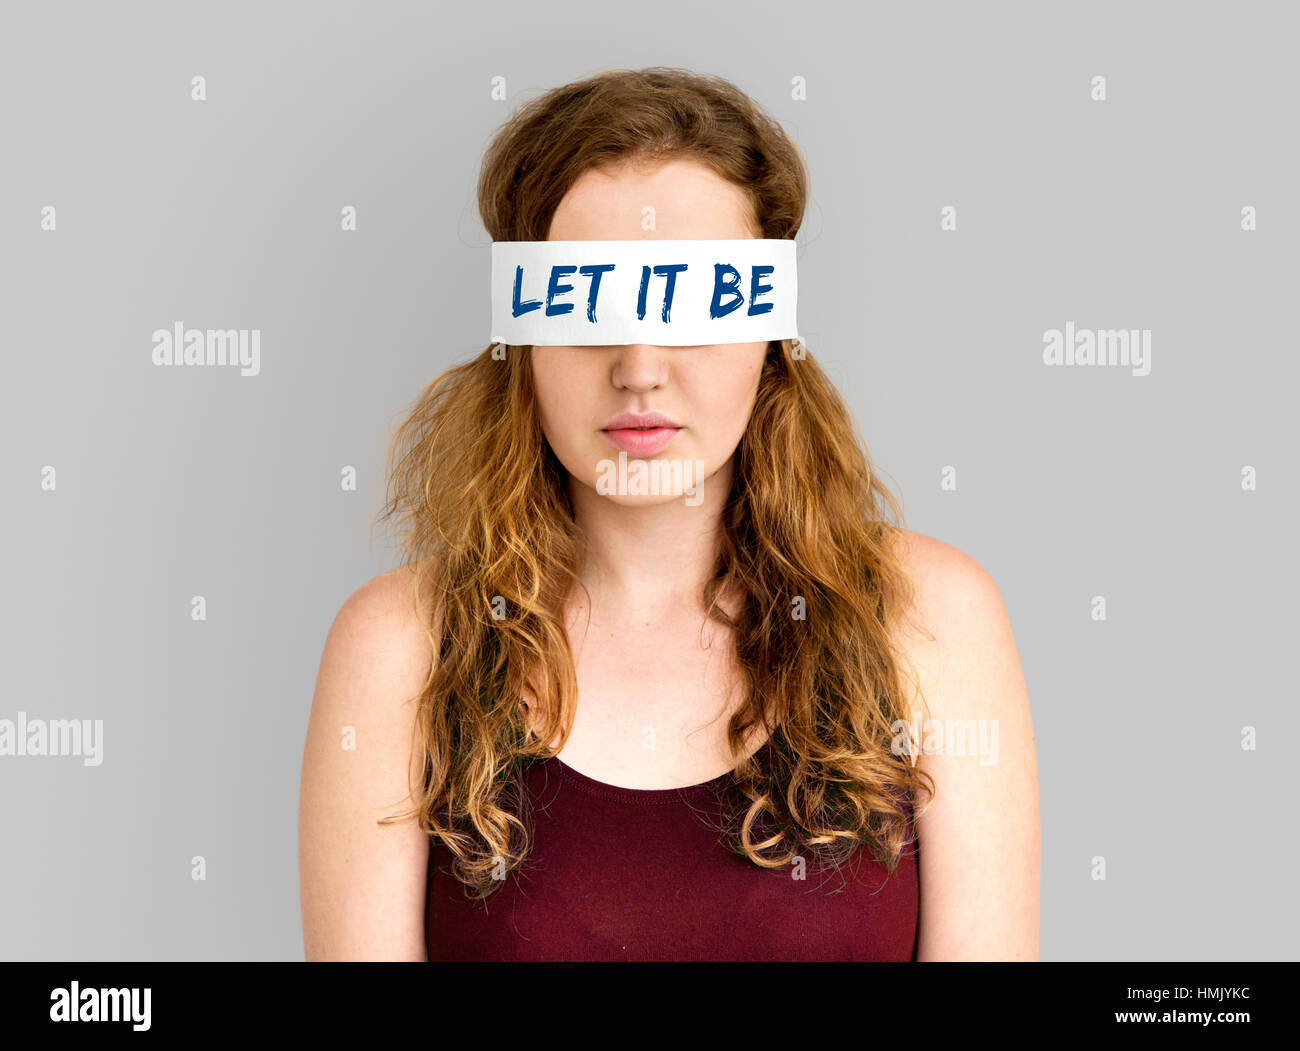 Let It Be Move On Carefree Ignorance Acceptance Concept - Stock Image